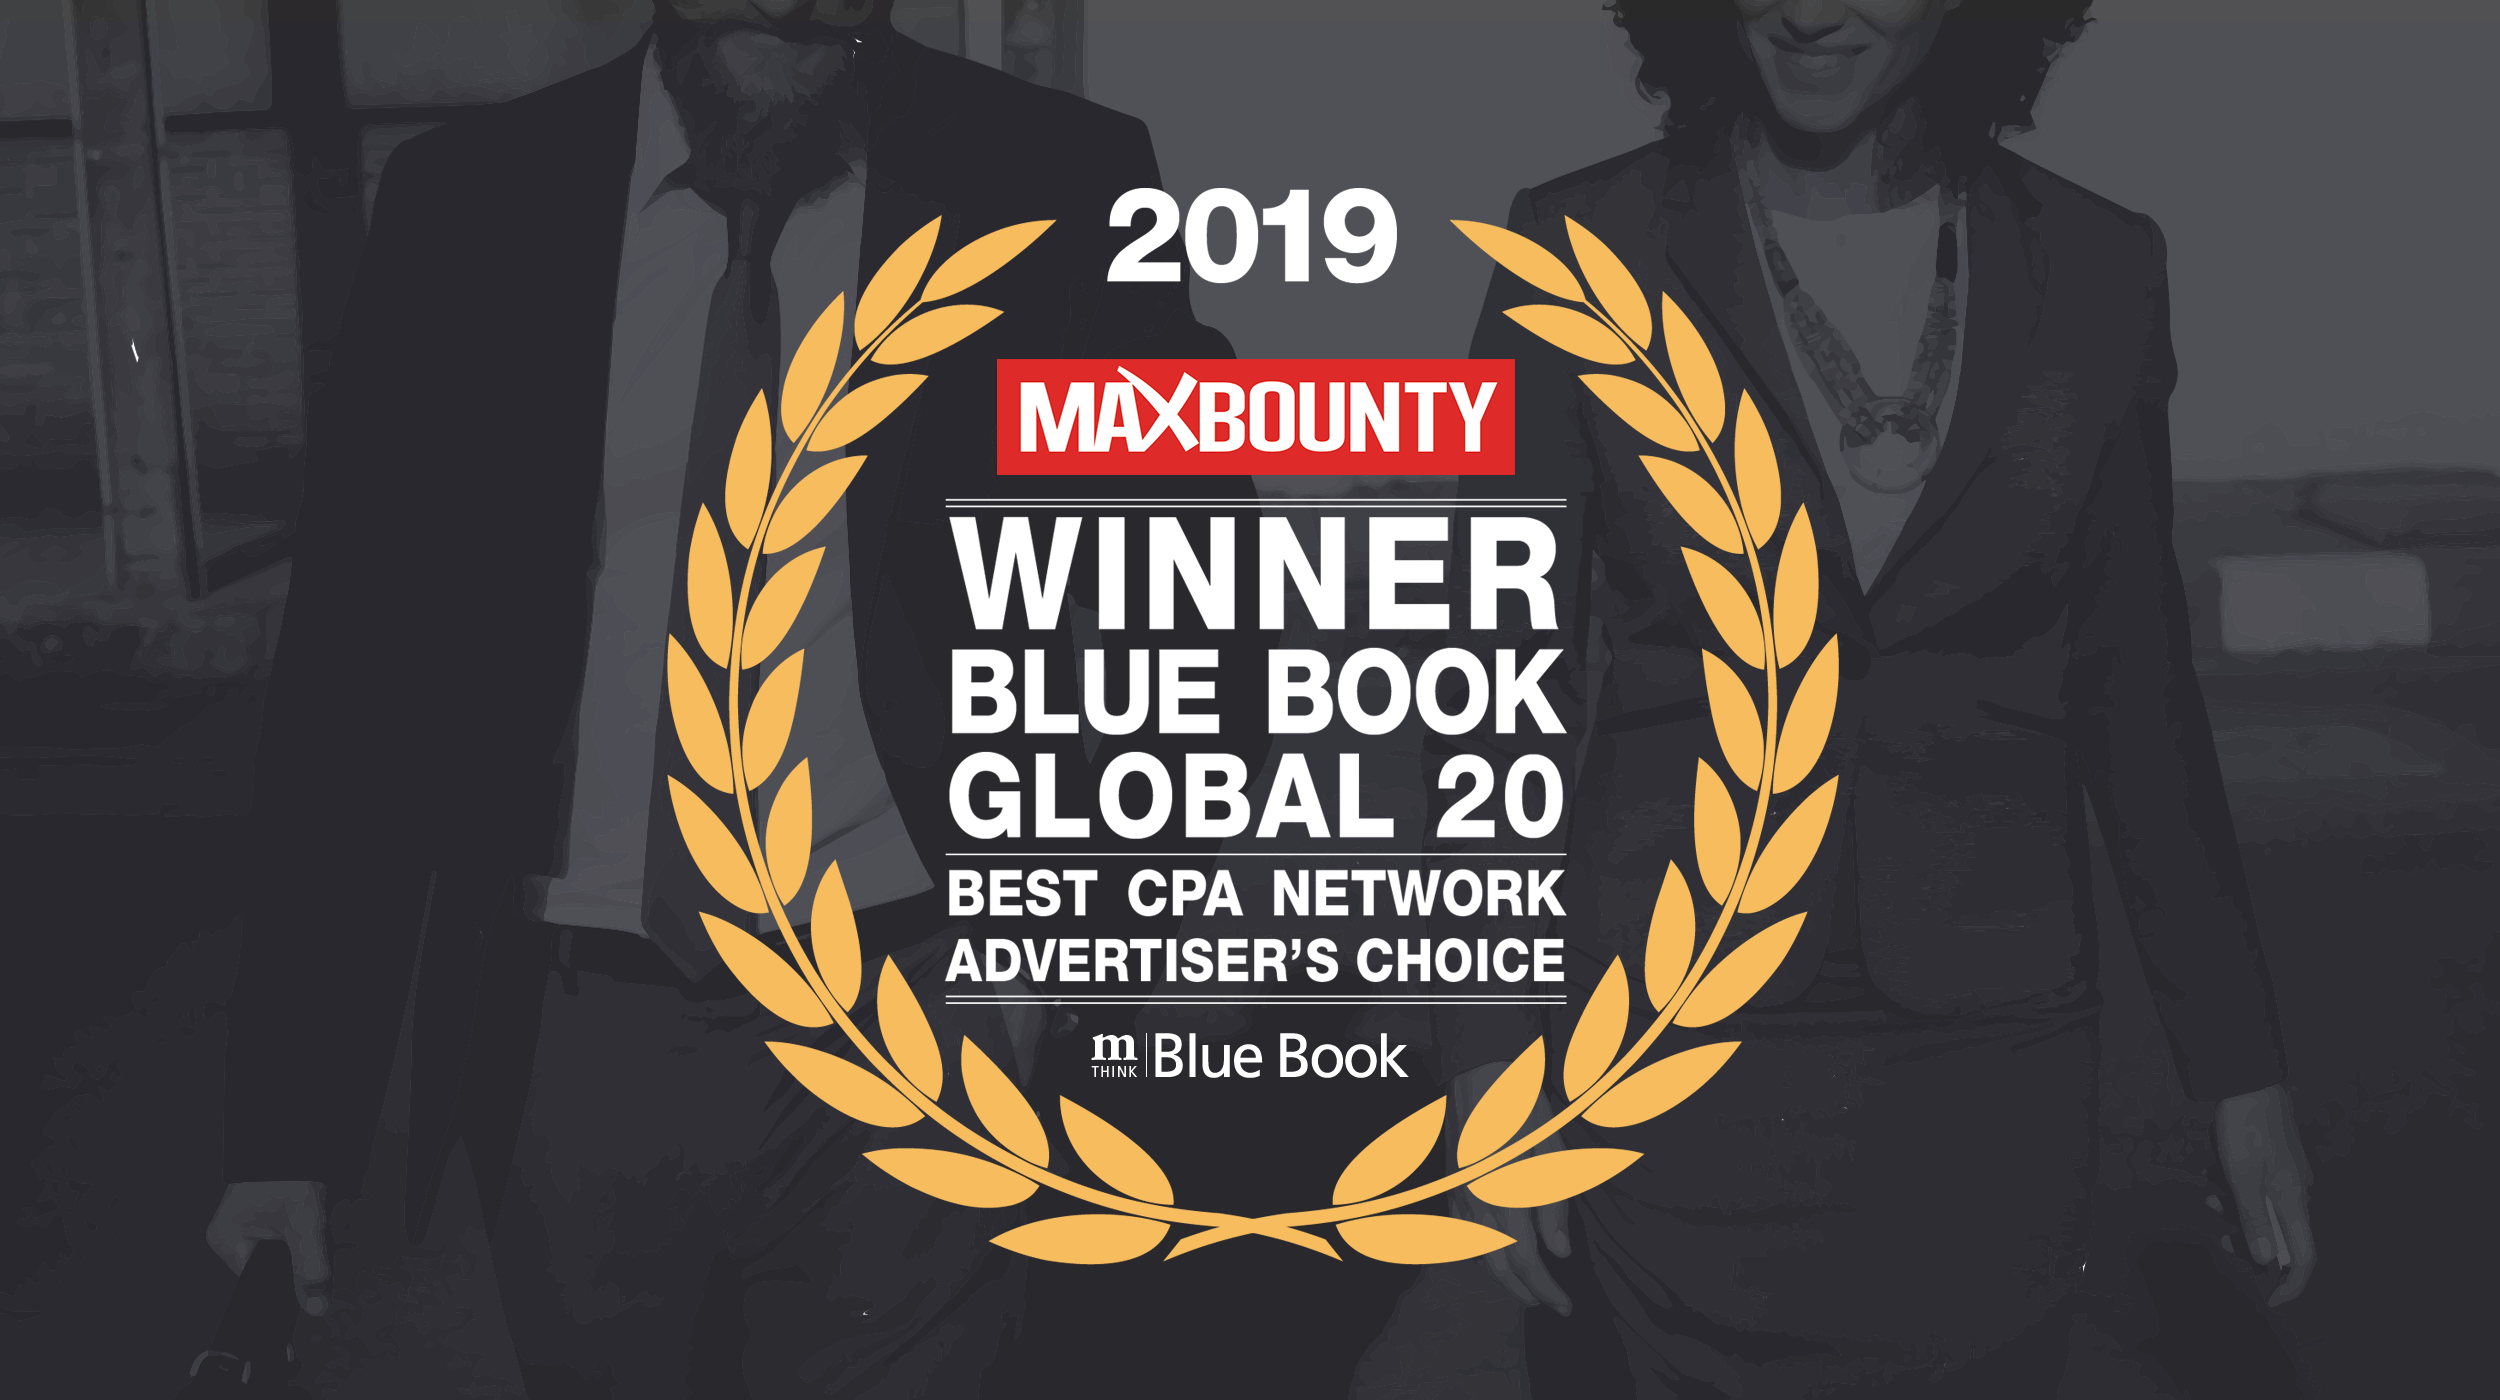 Advertisers Vote MaxBounty the Best CPA Network in 2019